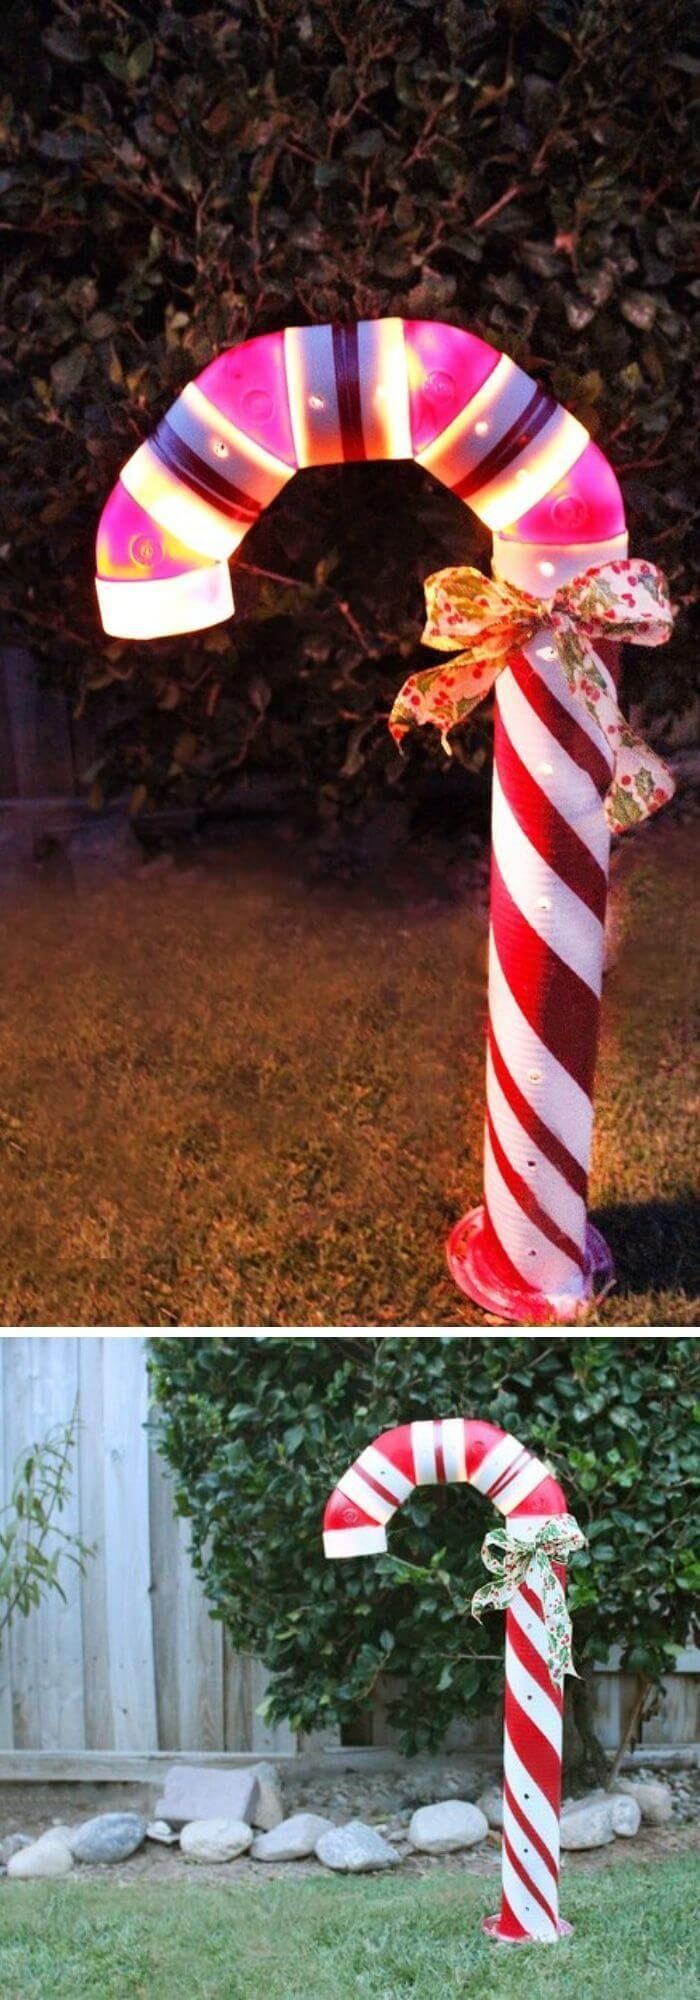 38+ Beautiful DIY Outdoor Christmas Decorations (Ideas